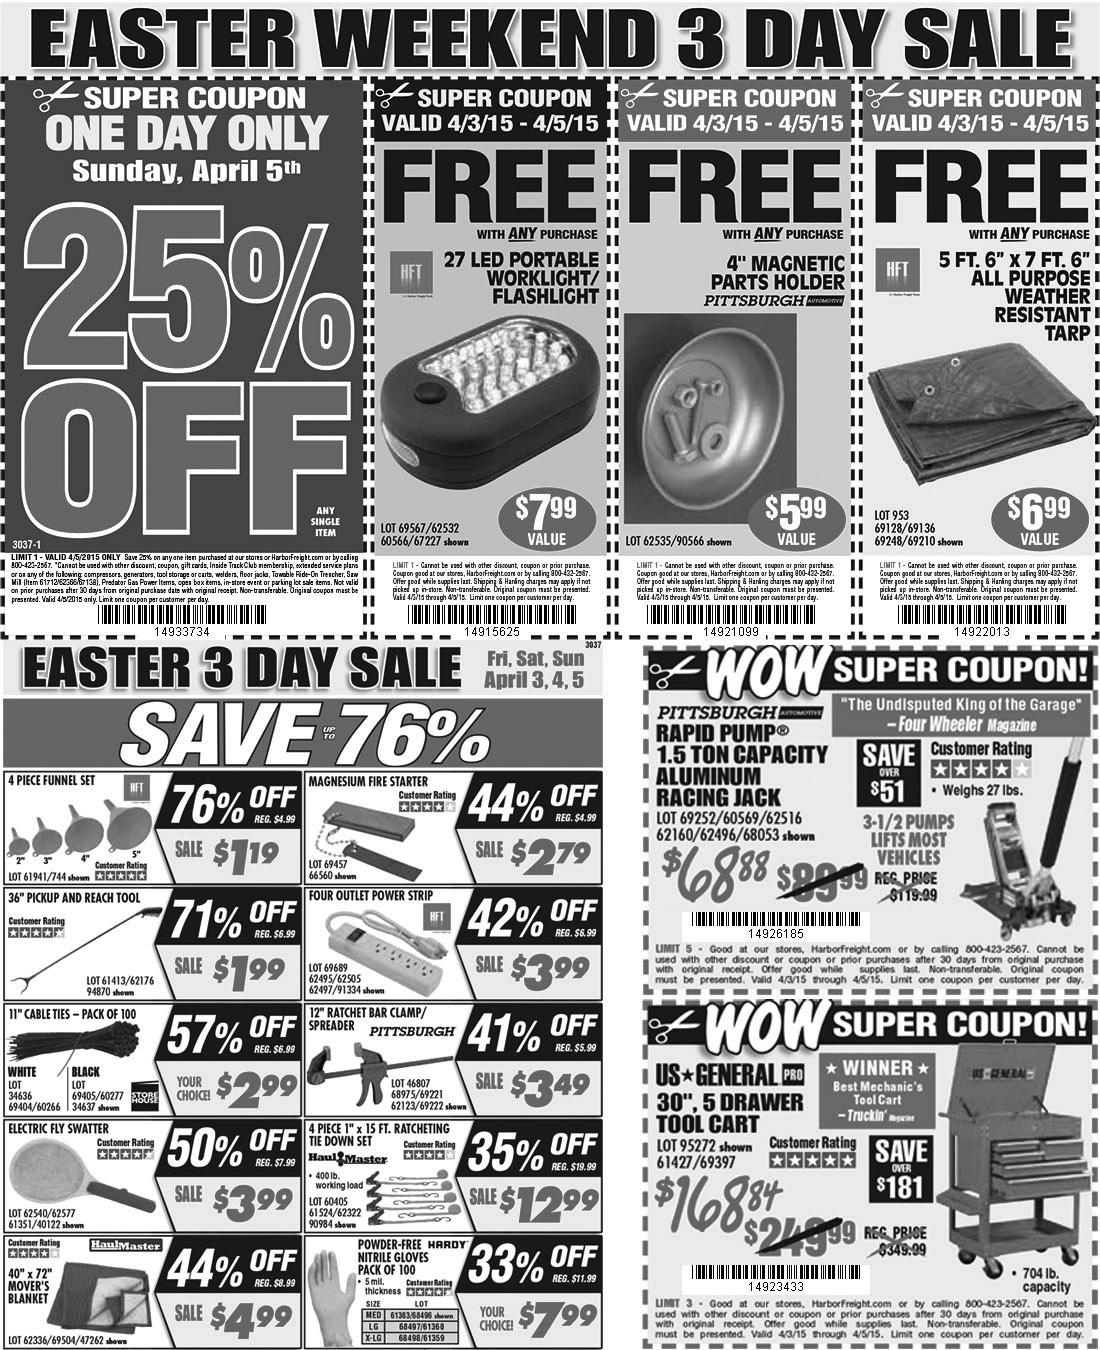 Harbor Freight Coupon October 2017 25% off a single item & more at Harbor Freight Tools, or online via promo code 14933734